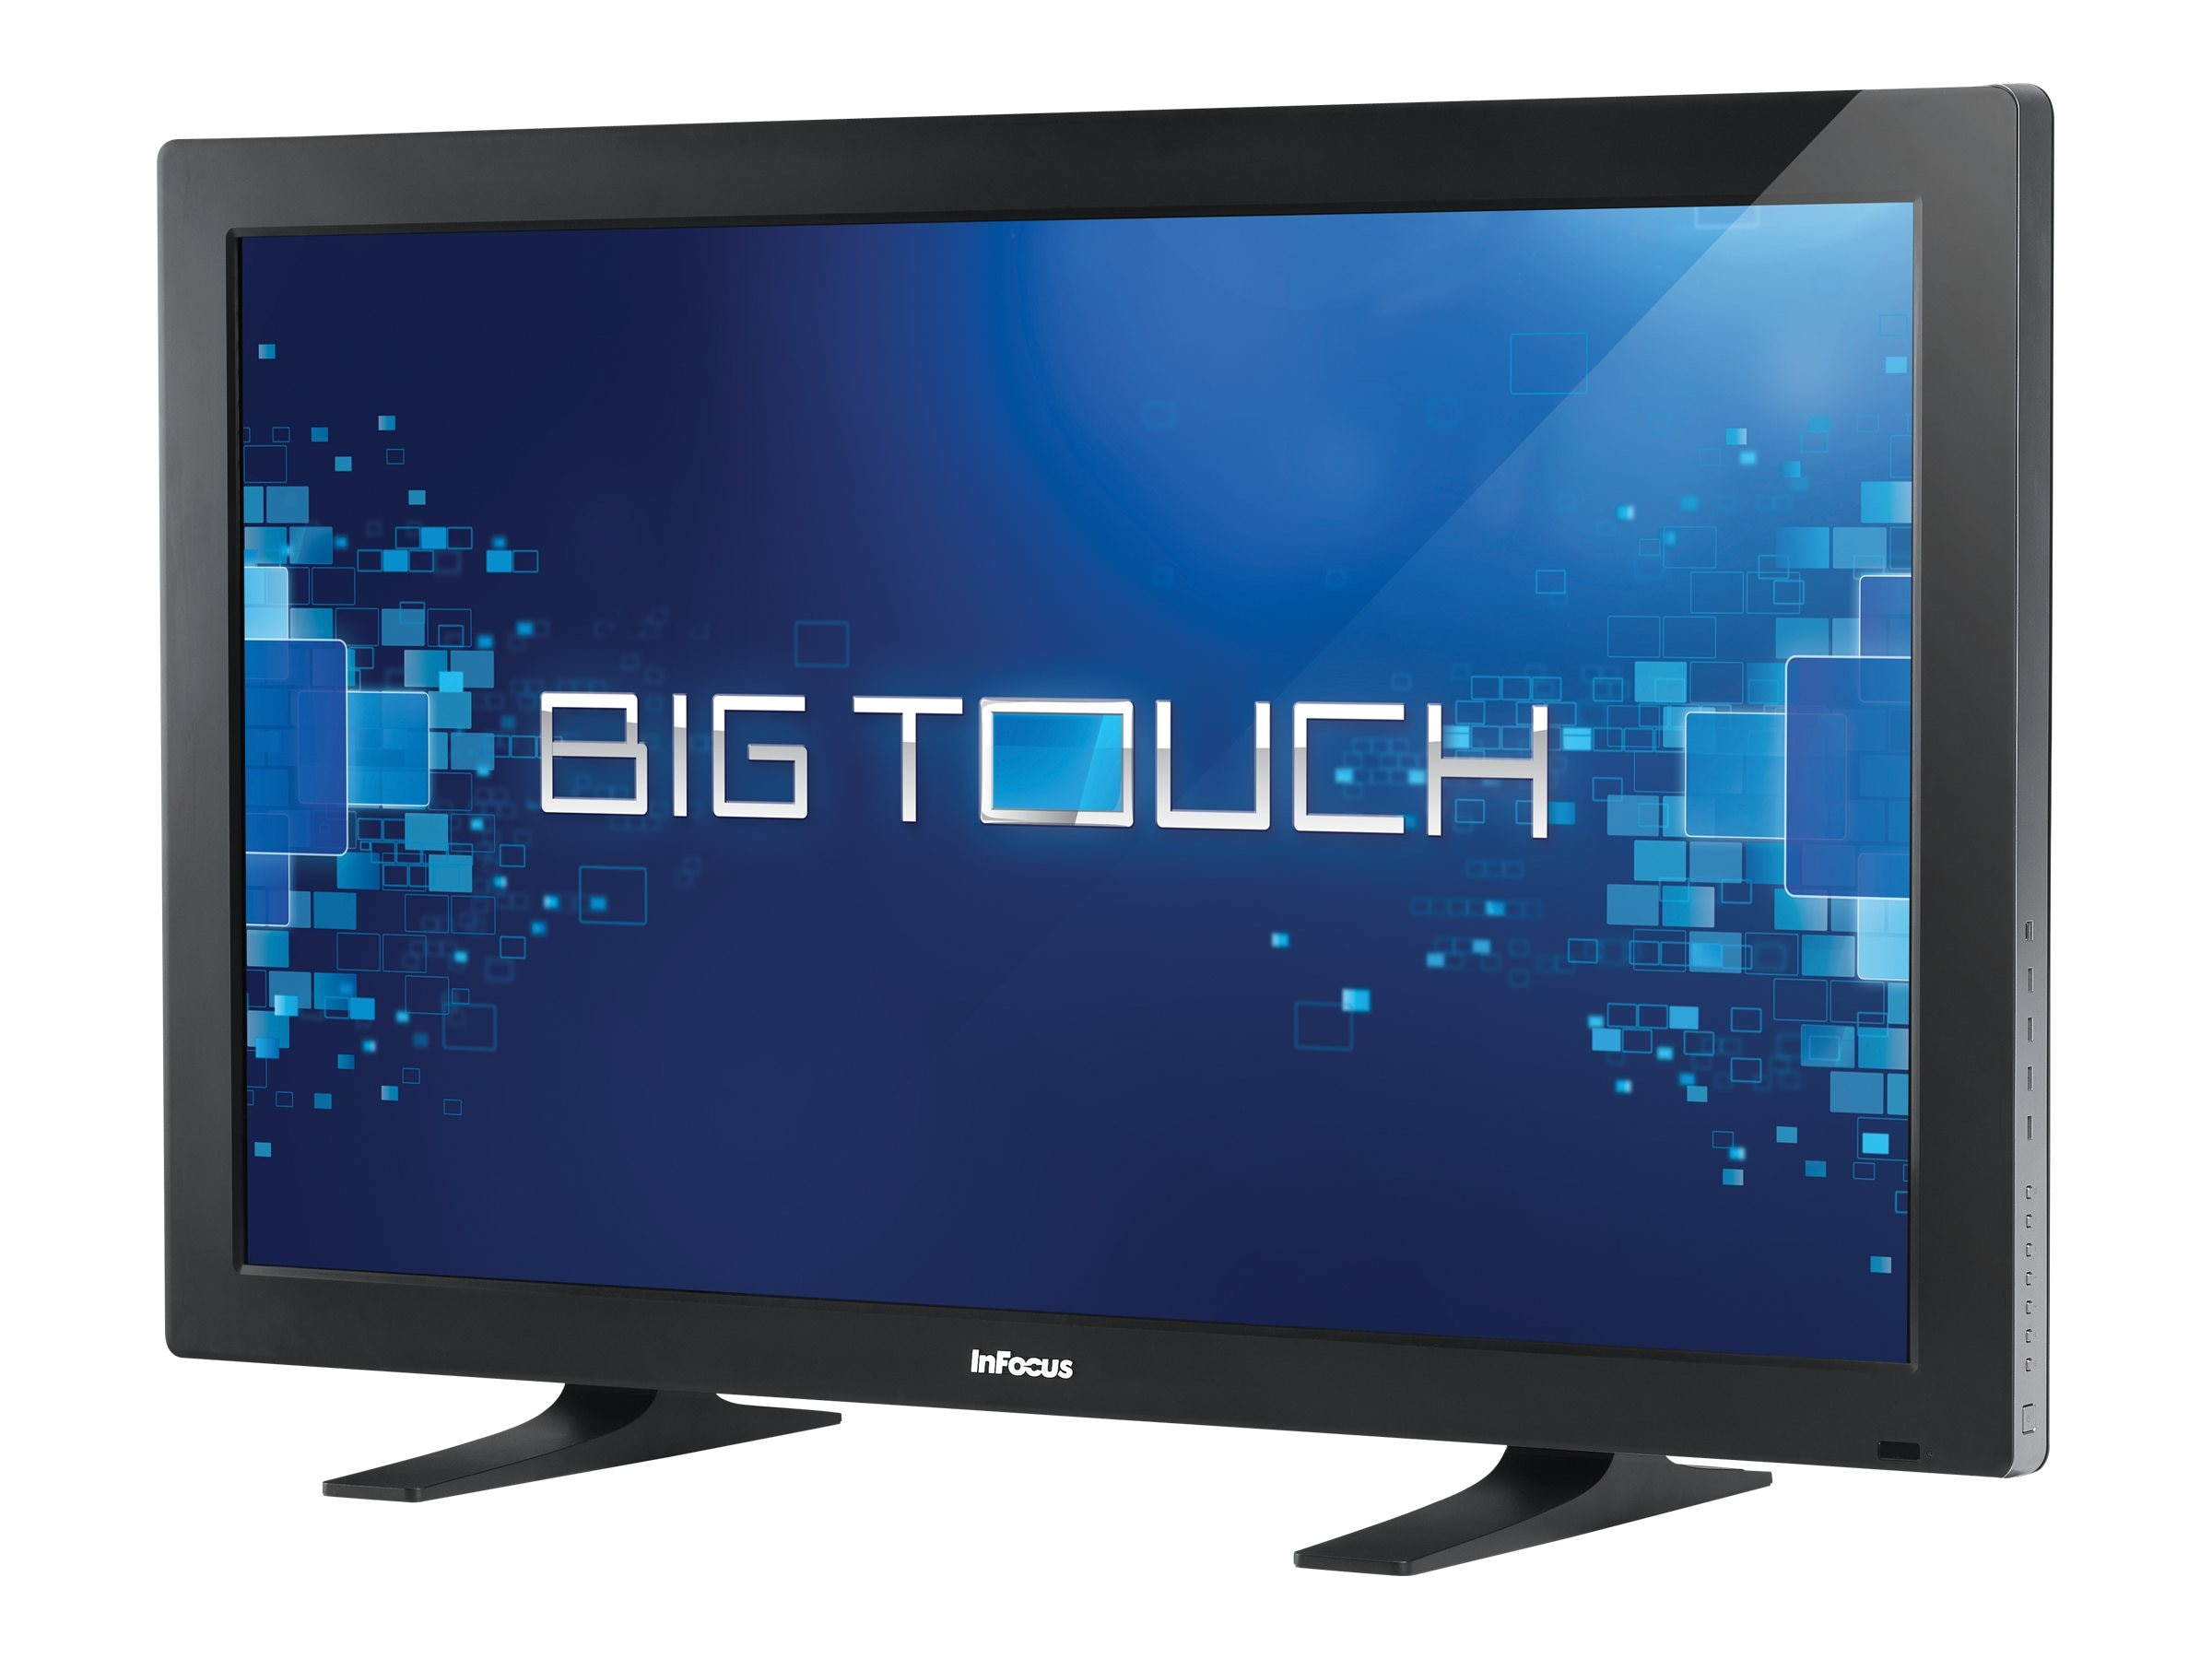 InFocus 55 BigTouch AIO Full HD Touchscreen Display, Black